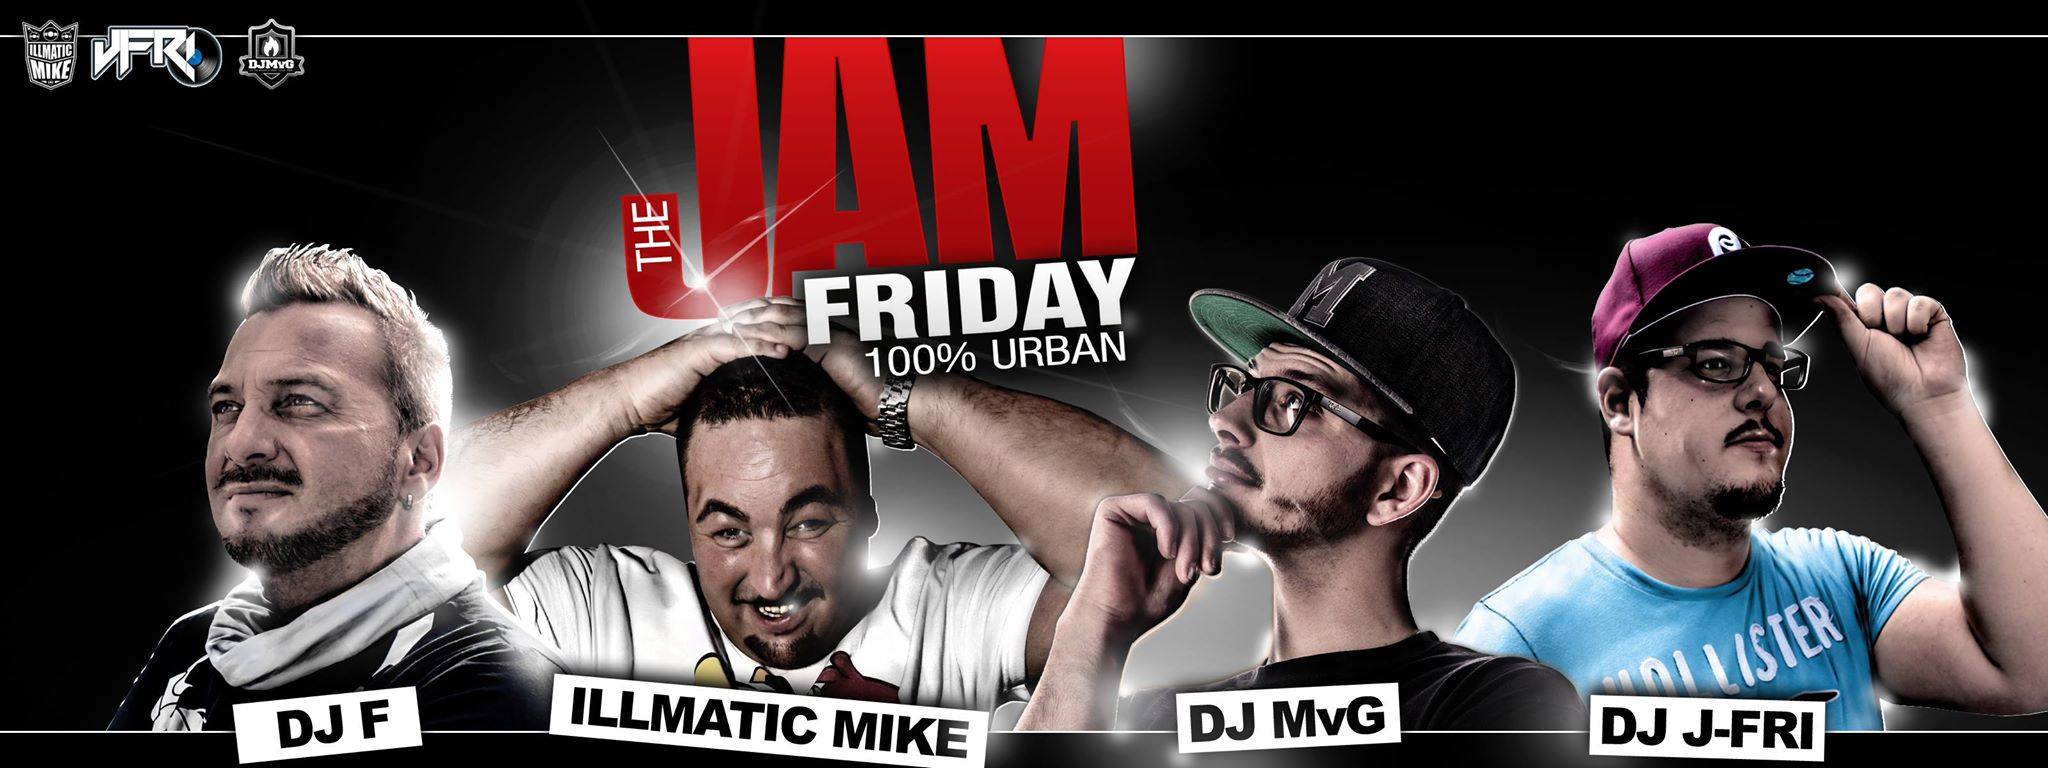 The JAMfriday 100 Percent URBAN